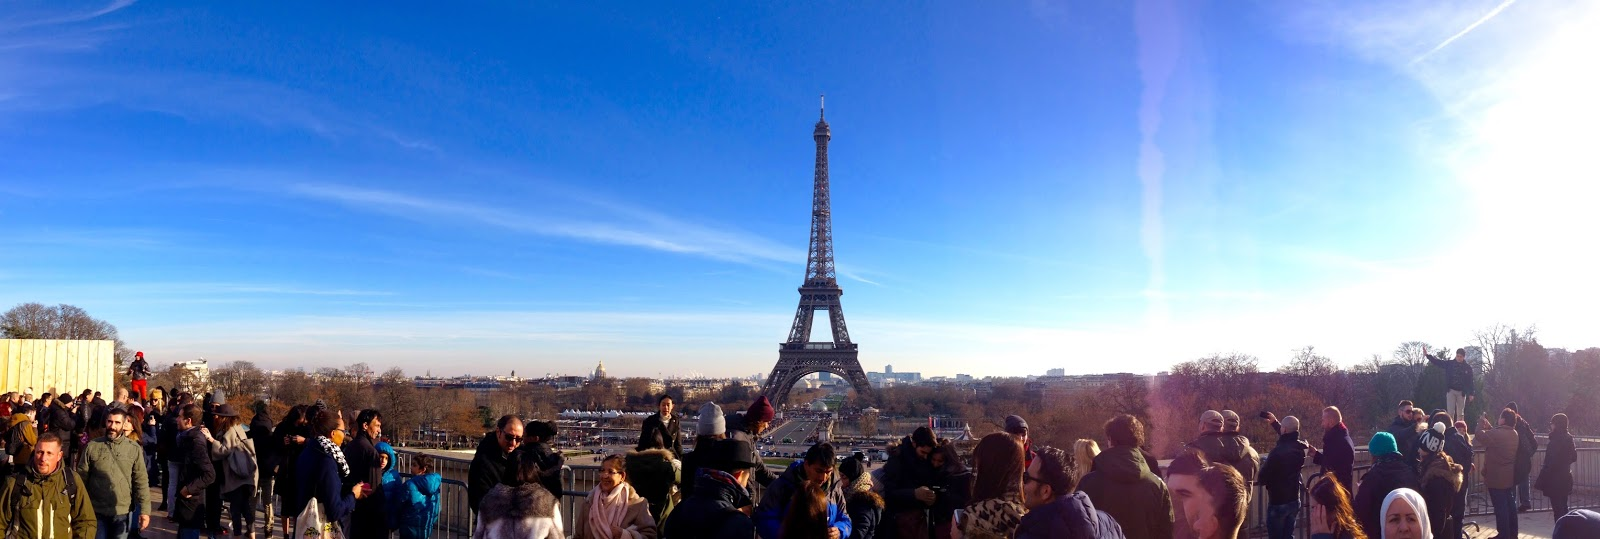 Jalan-Jalan di Paris - Eiffel Tower Panorama from Trocadero